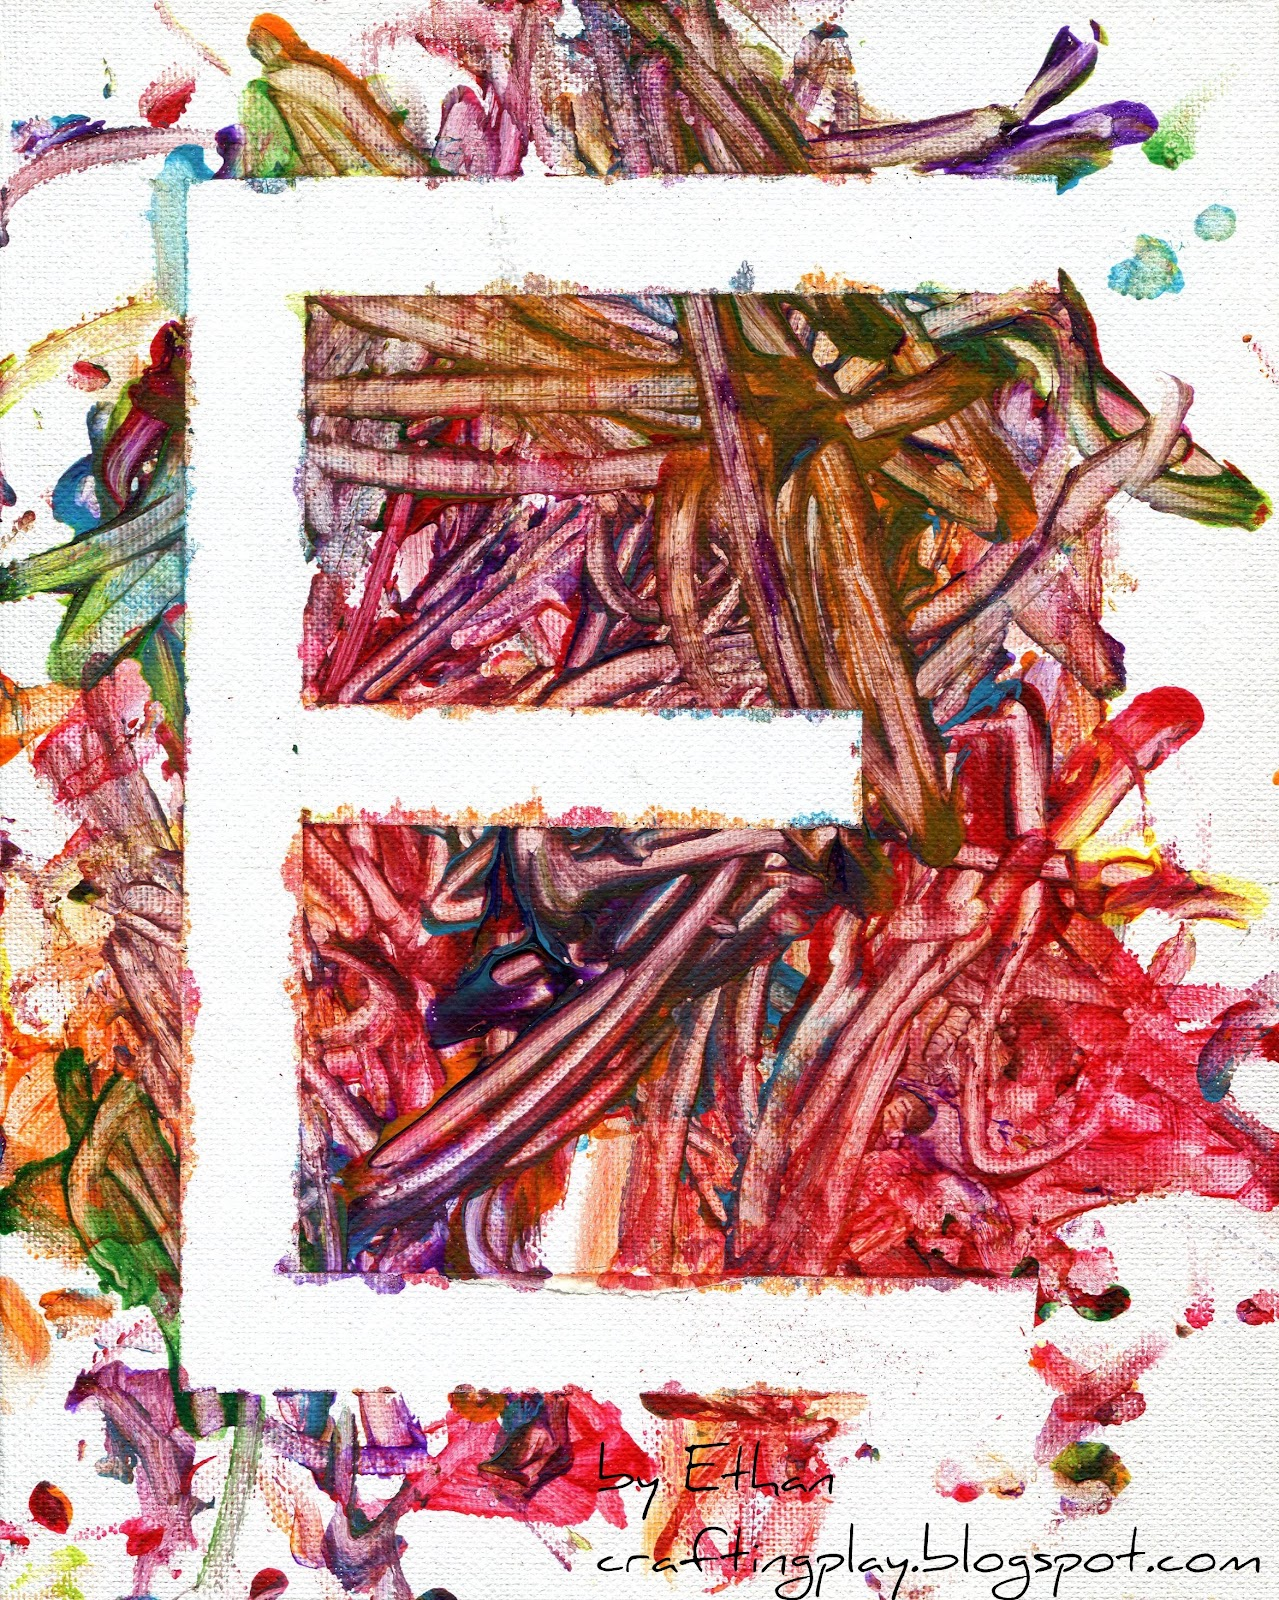 Q-tip and Finger Painting Letters on Canvas